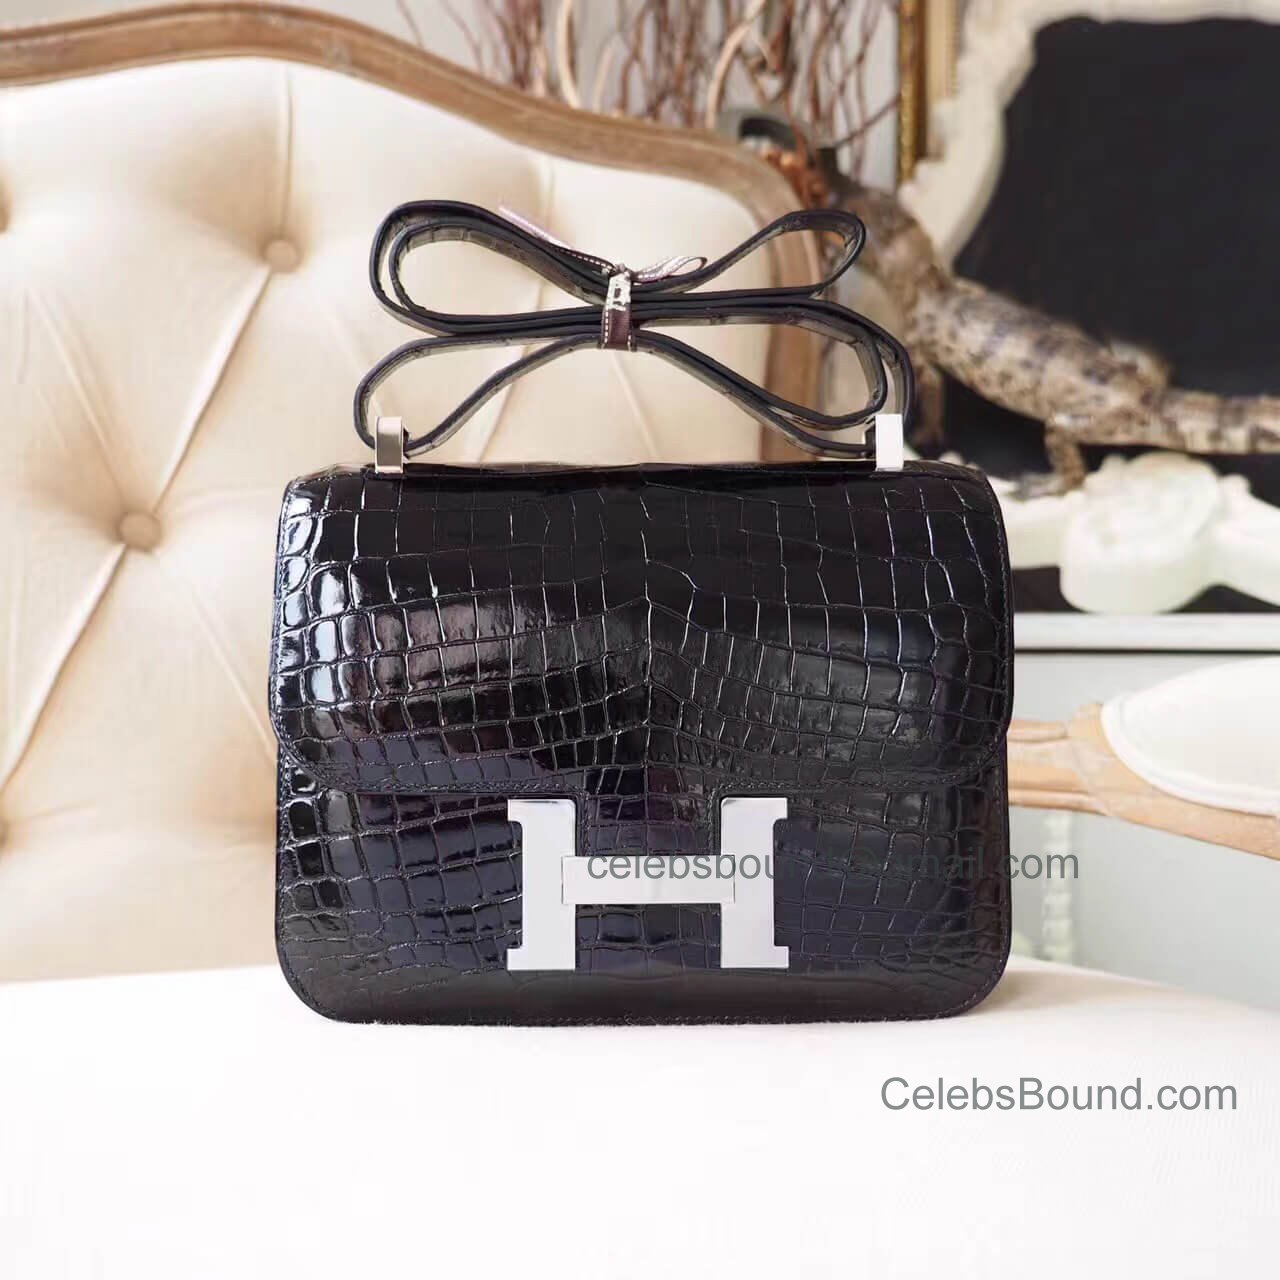 Replica Hermes Constance 23 Bag in ck89 Noir Shiny Nile Croc PHW